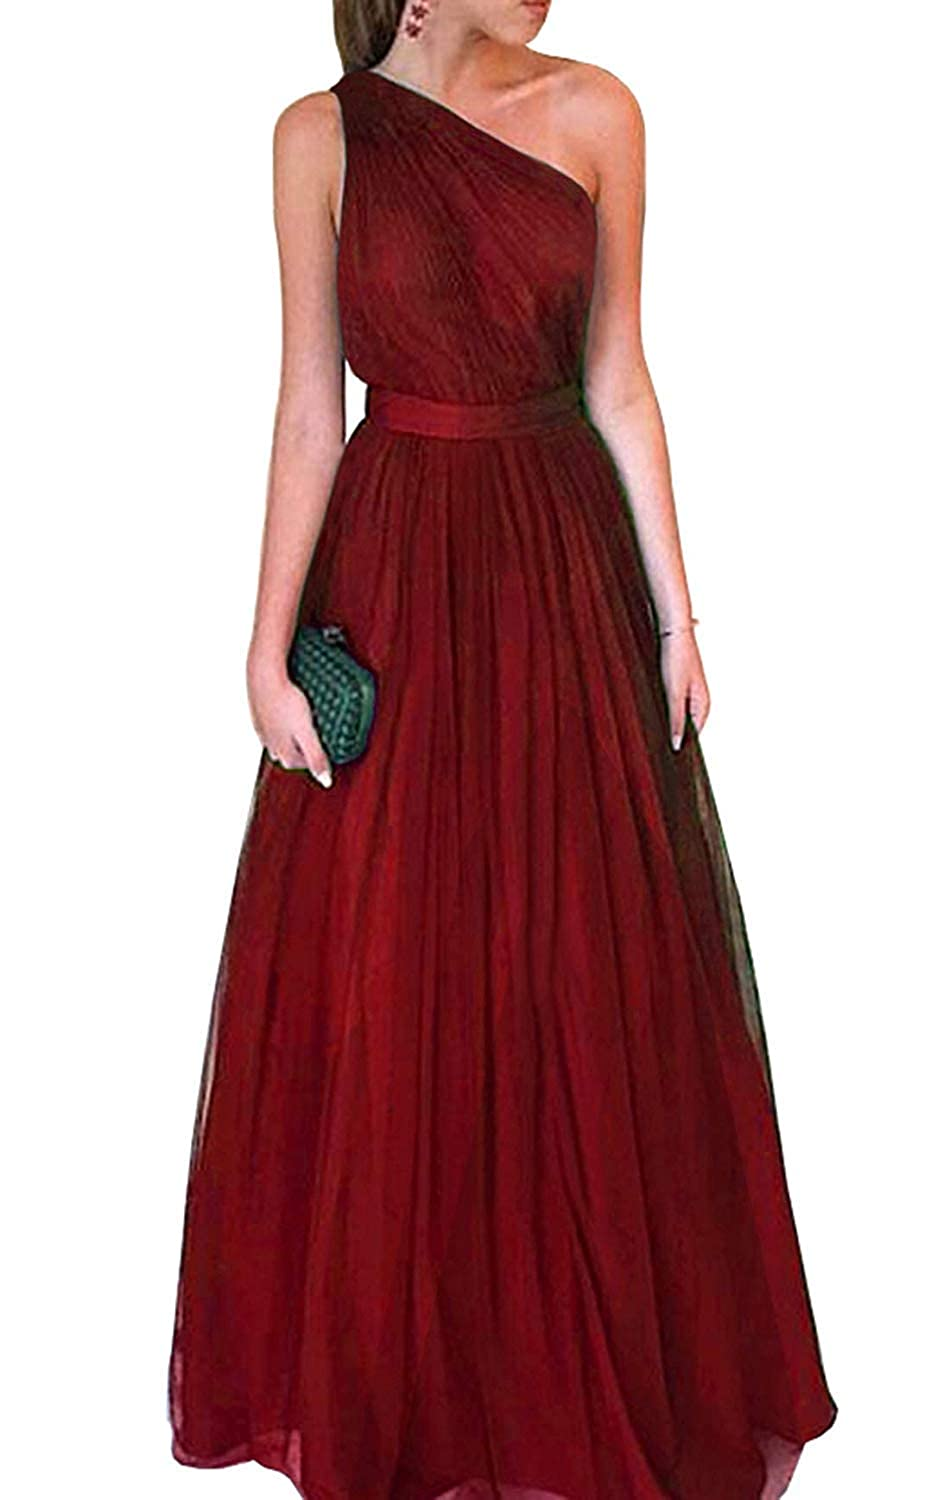 Red Dreagel Women's One Shoulder Prom Dresses Long Ruched Bridesmaid Dress Evening Gowns